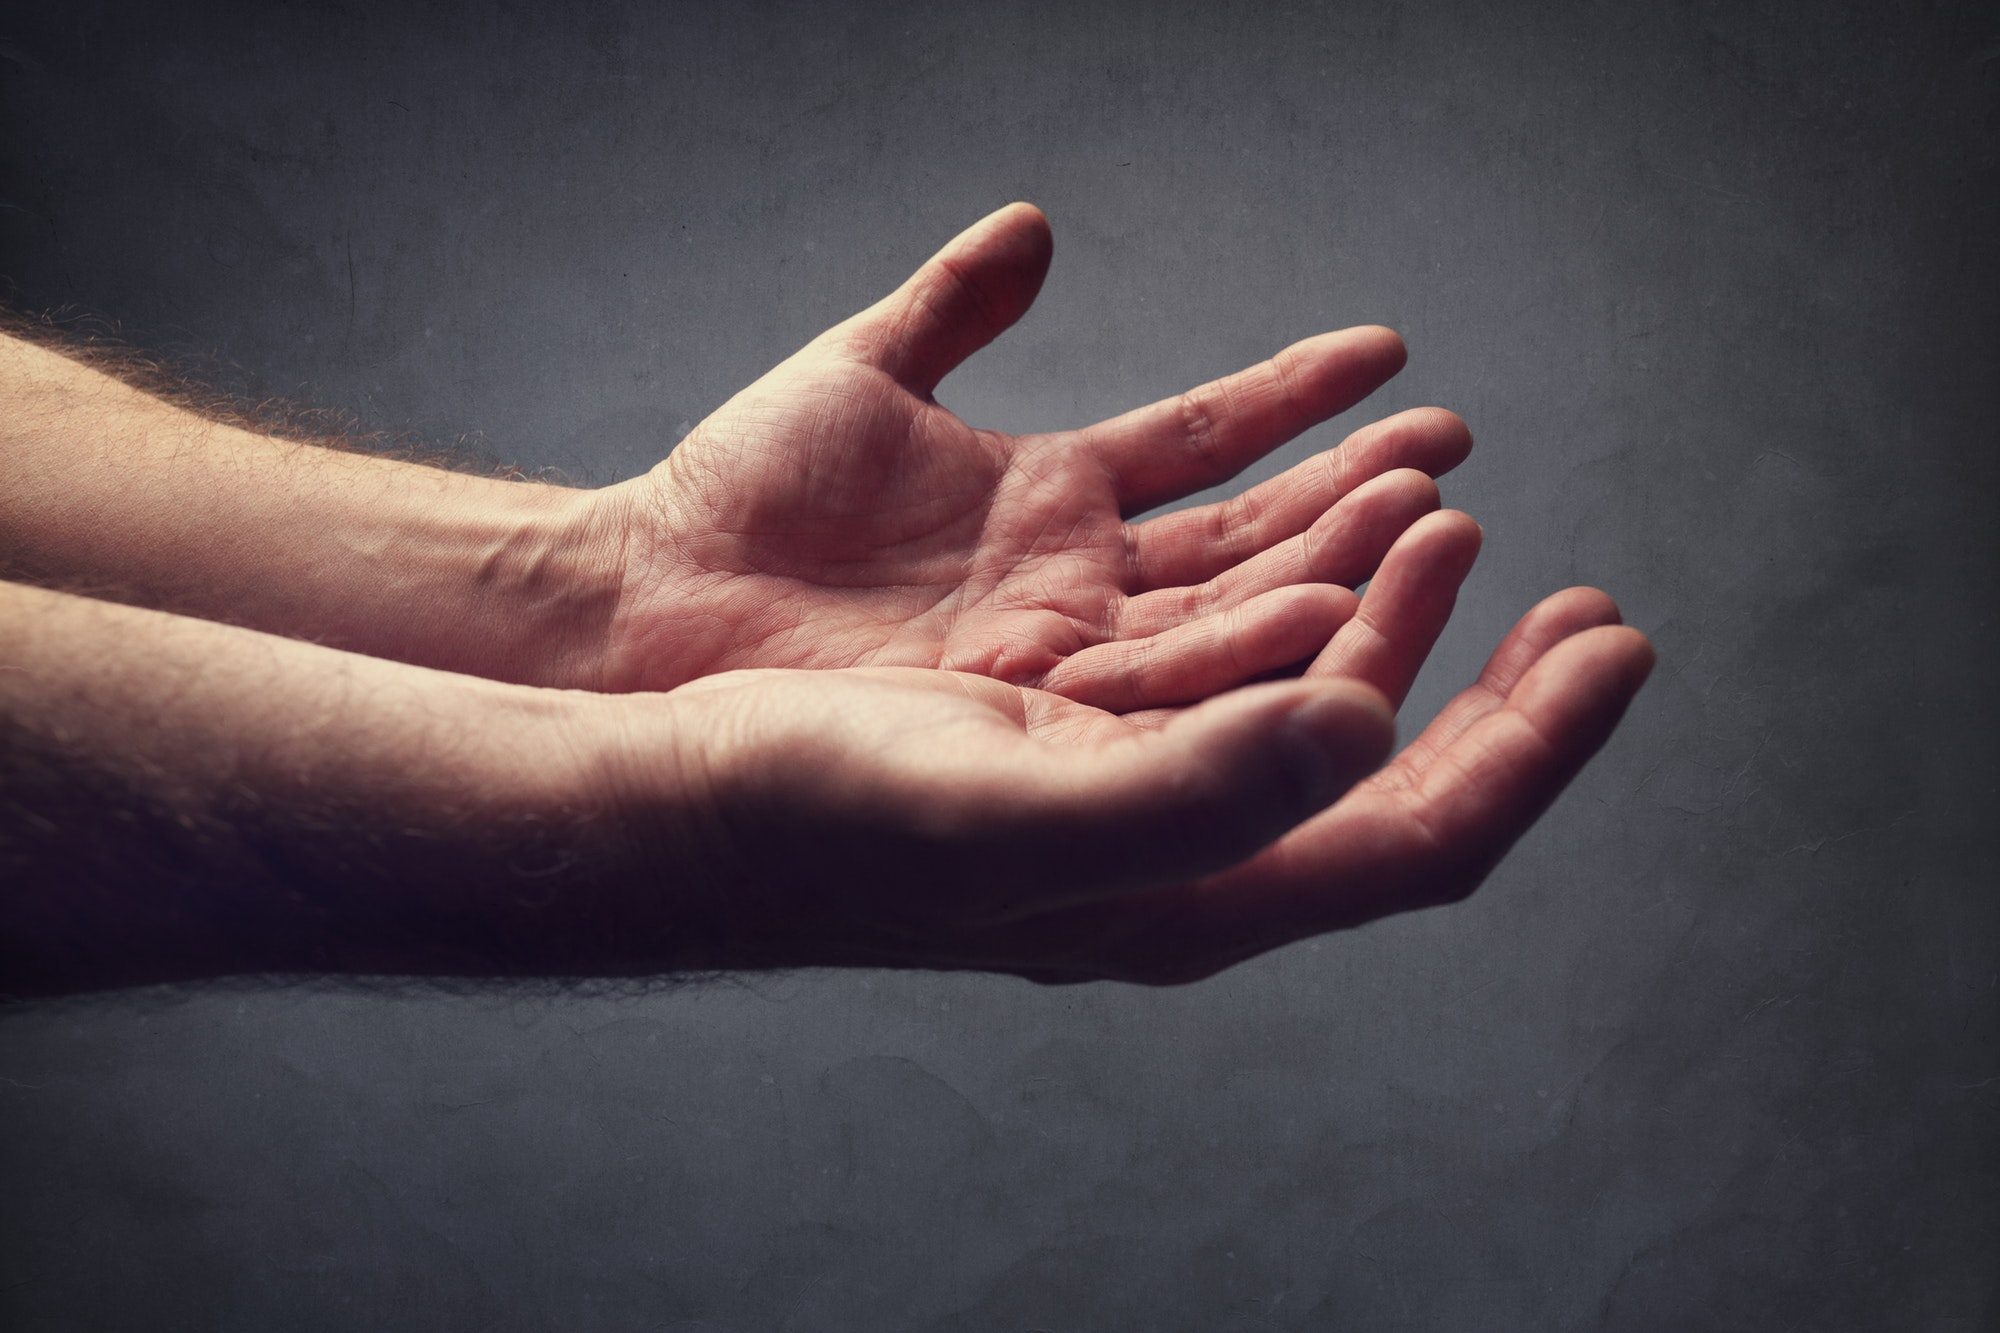 Helping hands or begging for help